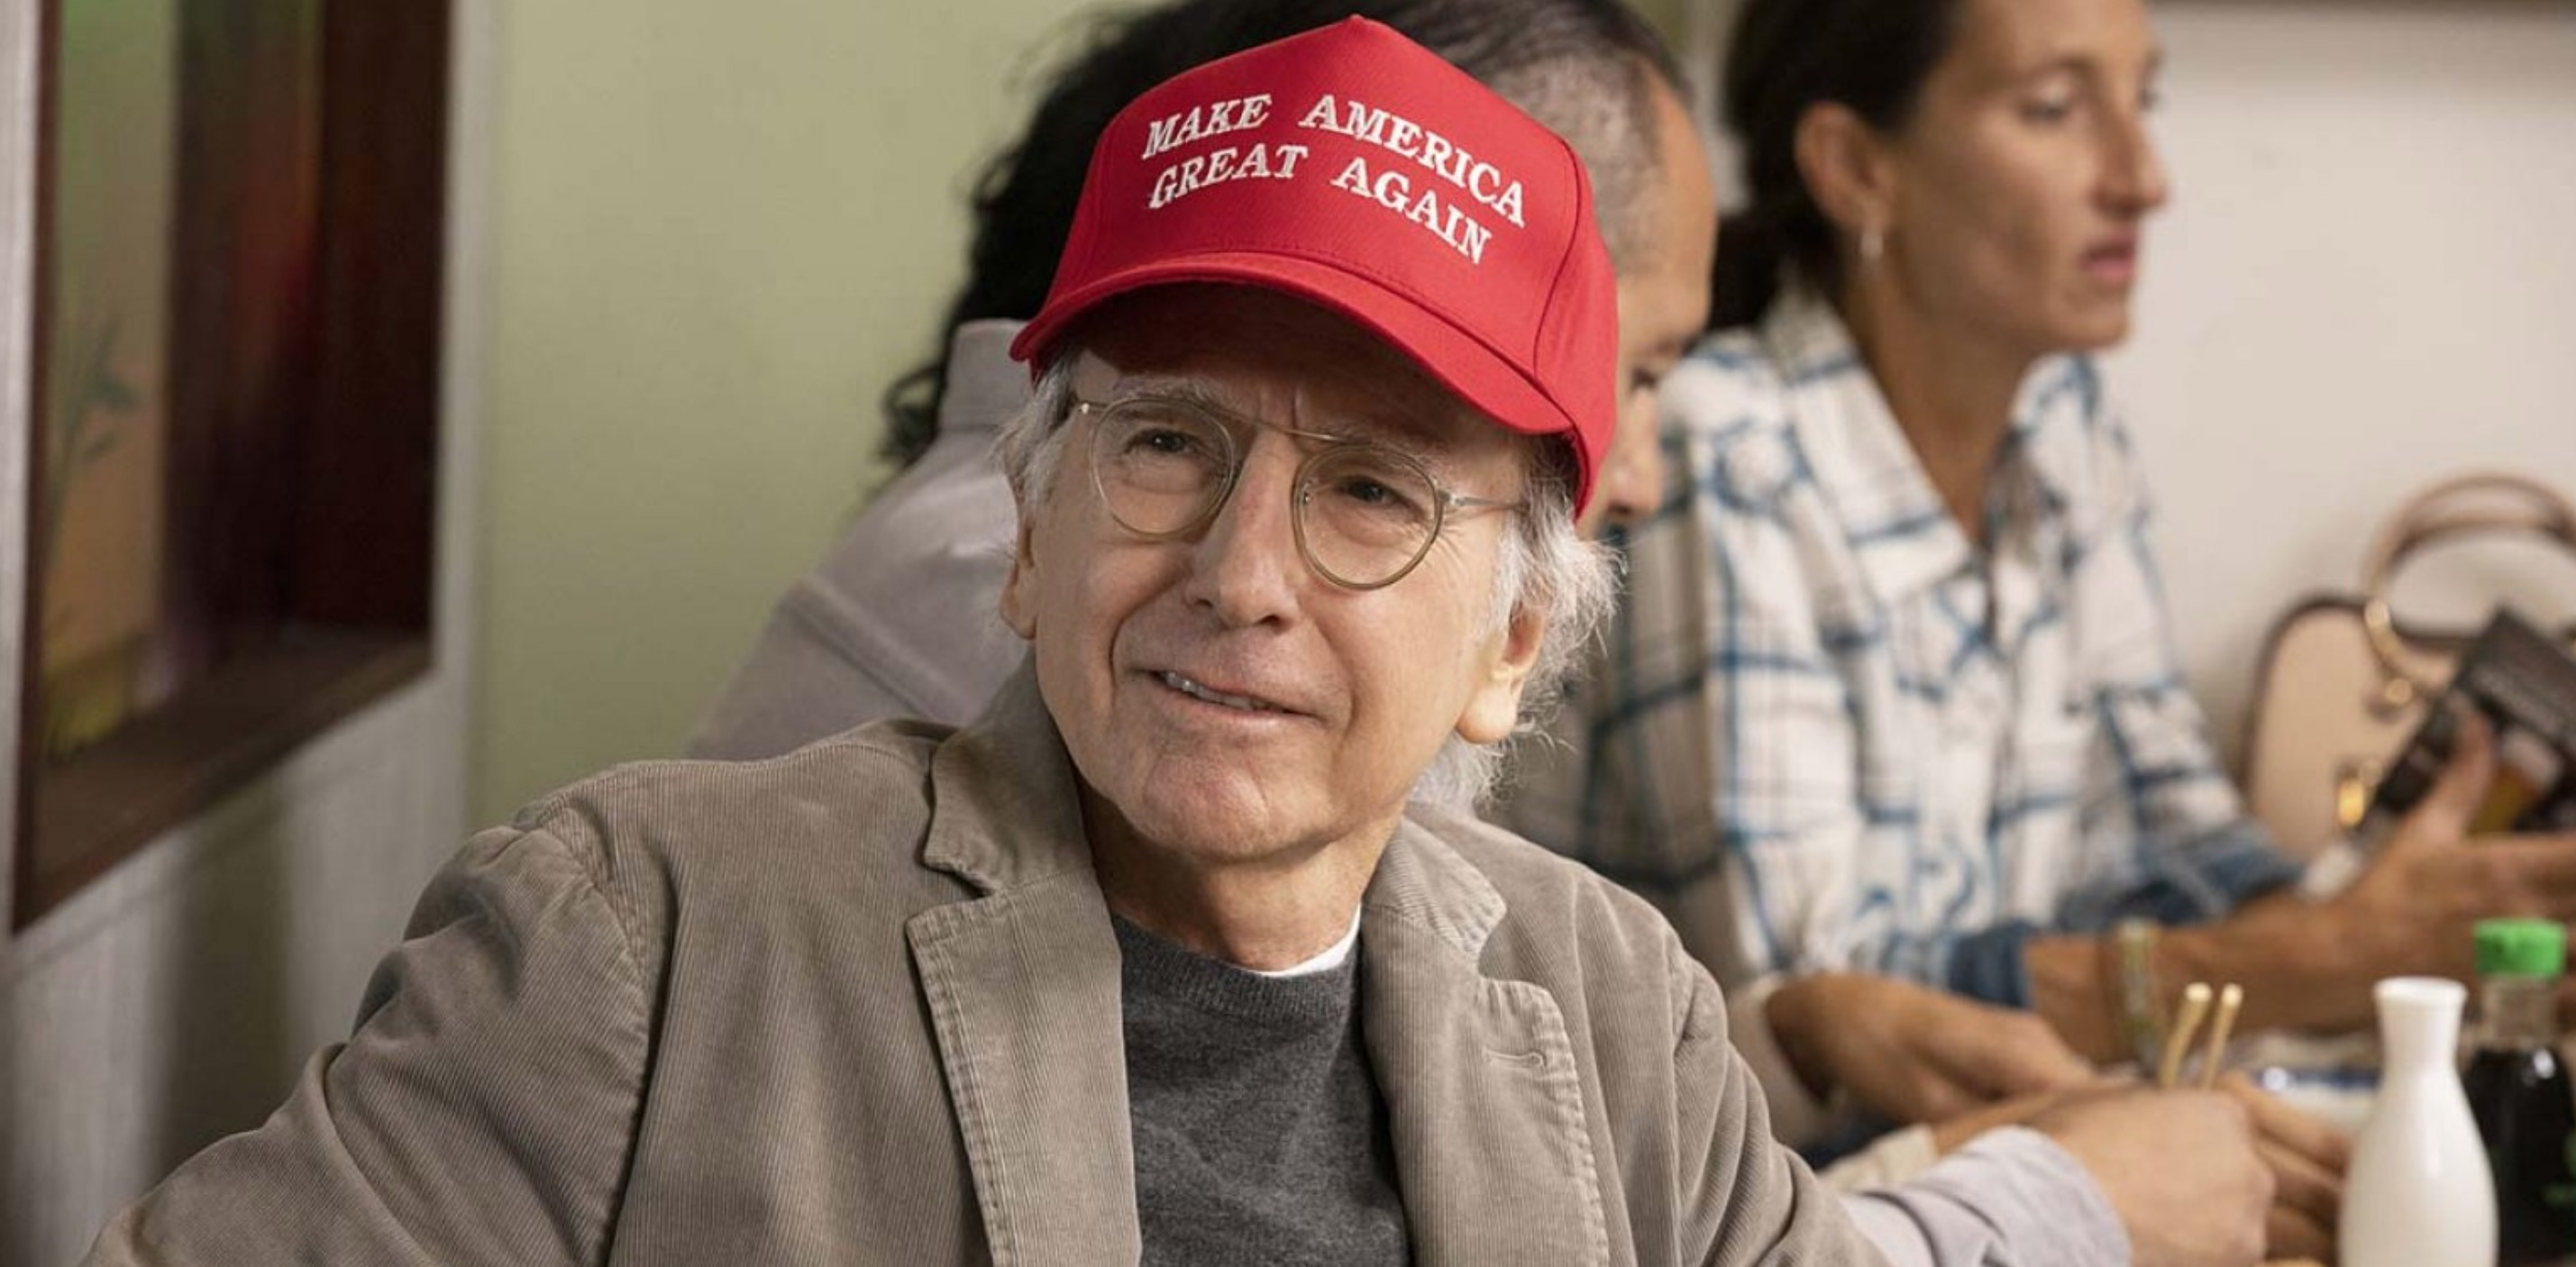 Does Donald Trump Know The Curb Your Enthusiasm Clip He Shared Is Mocking Him?